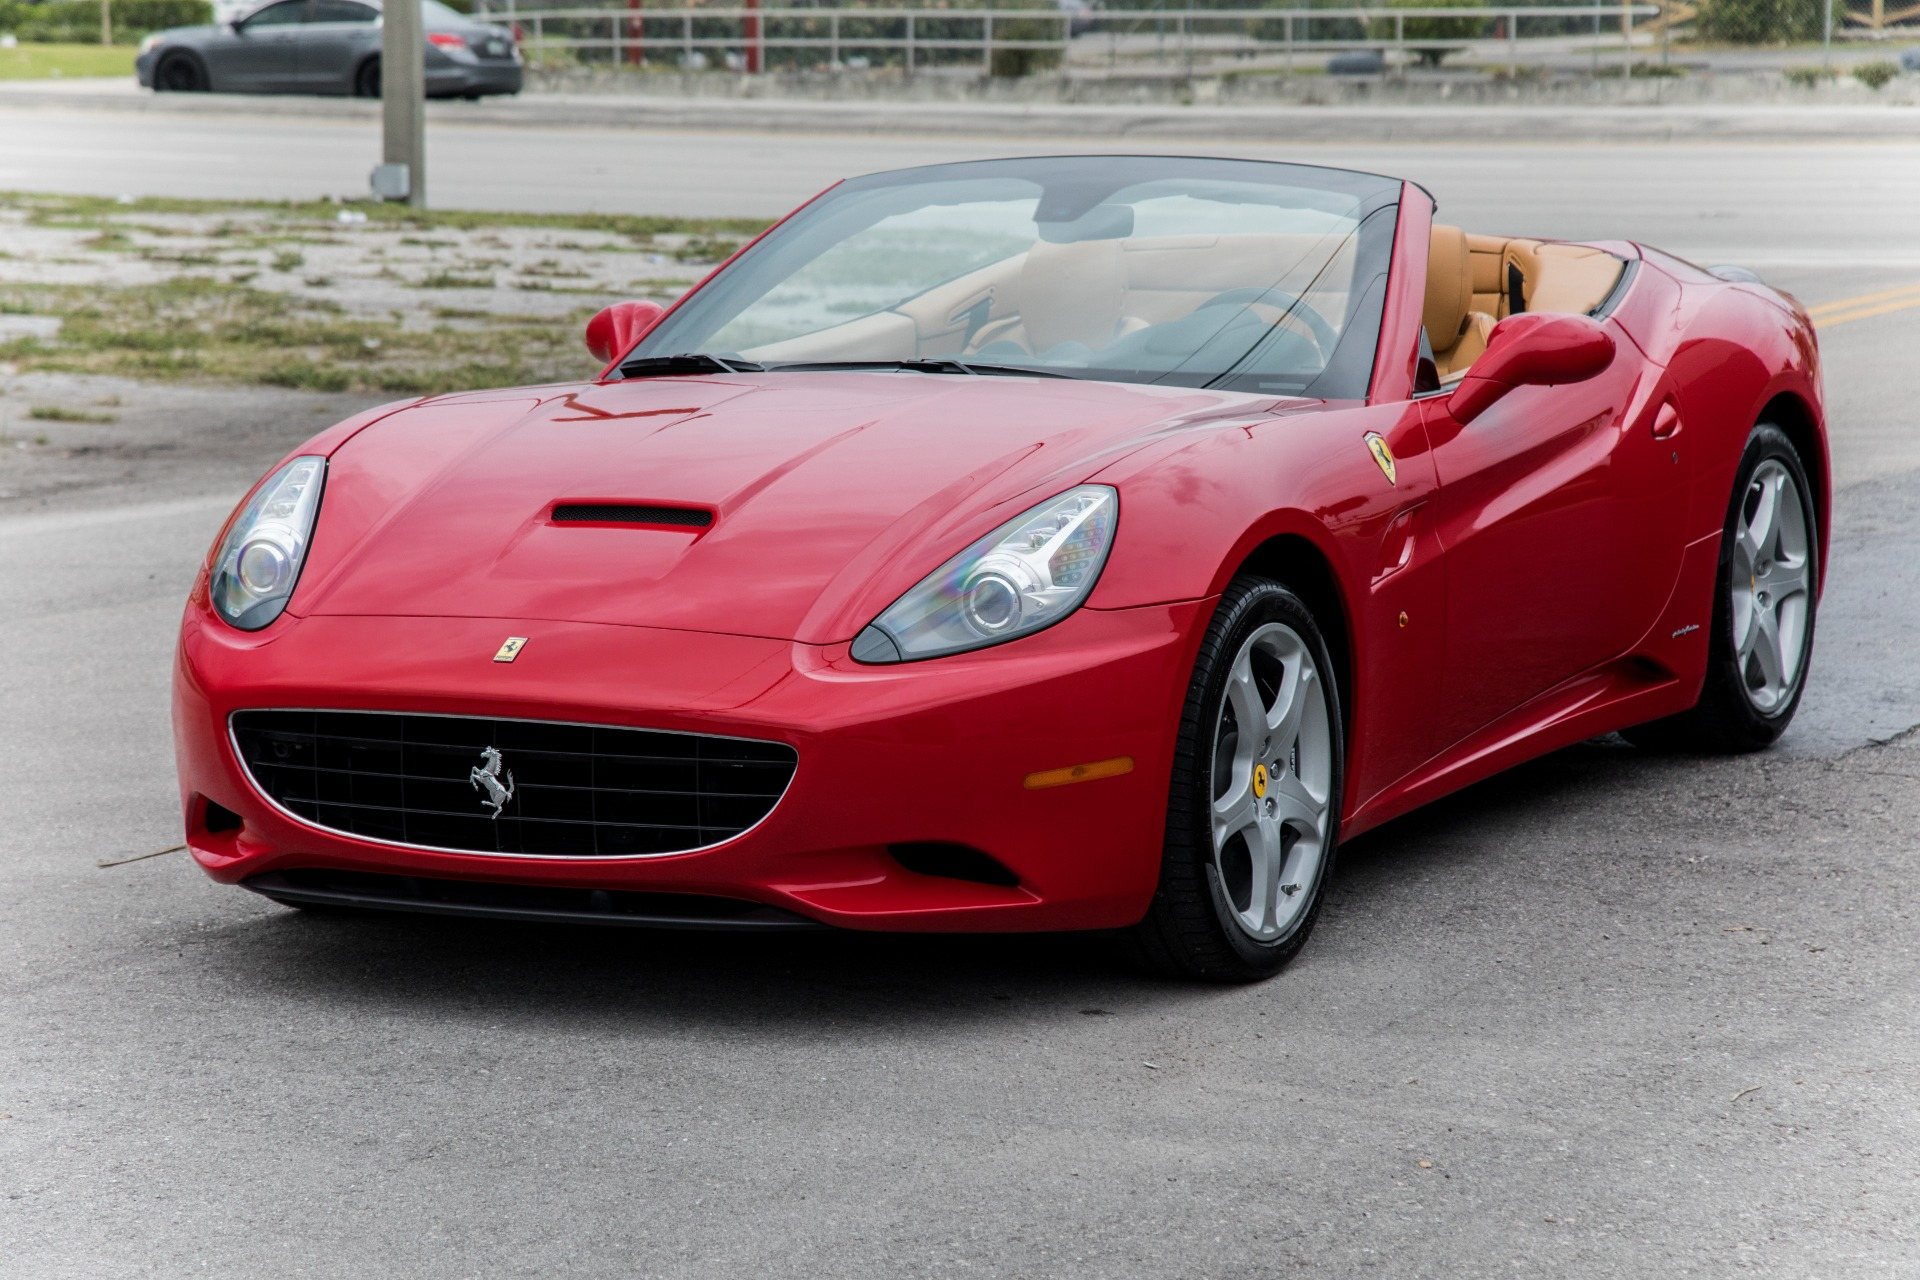 Used 2010 Ferrari California For Sale ($89,900)